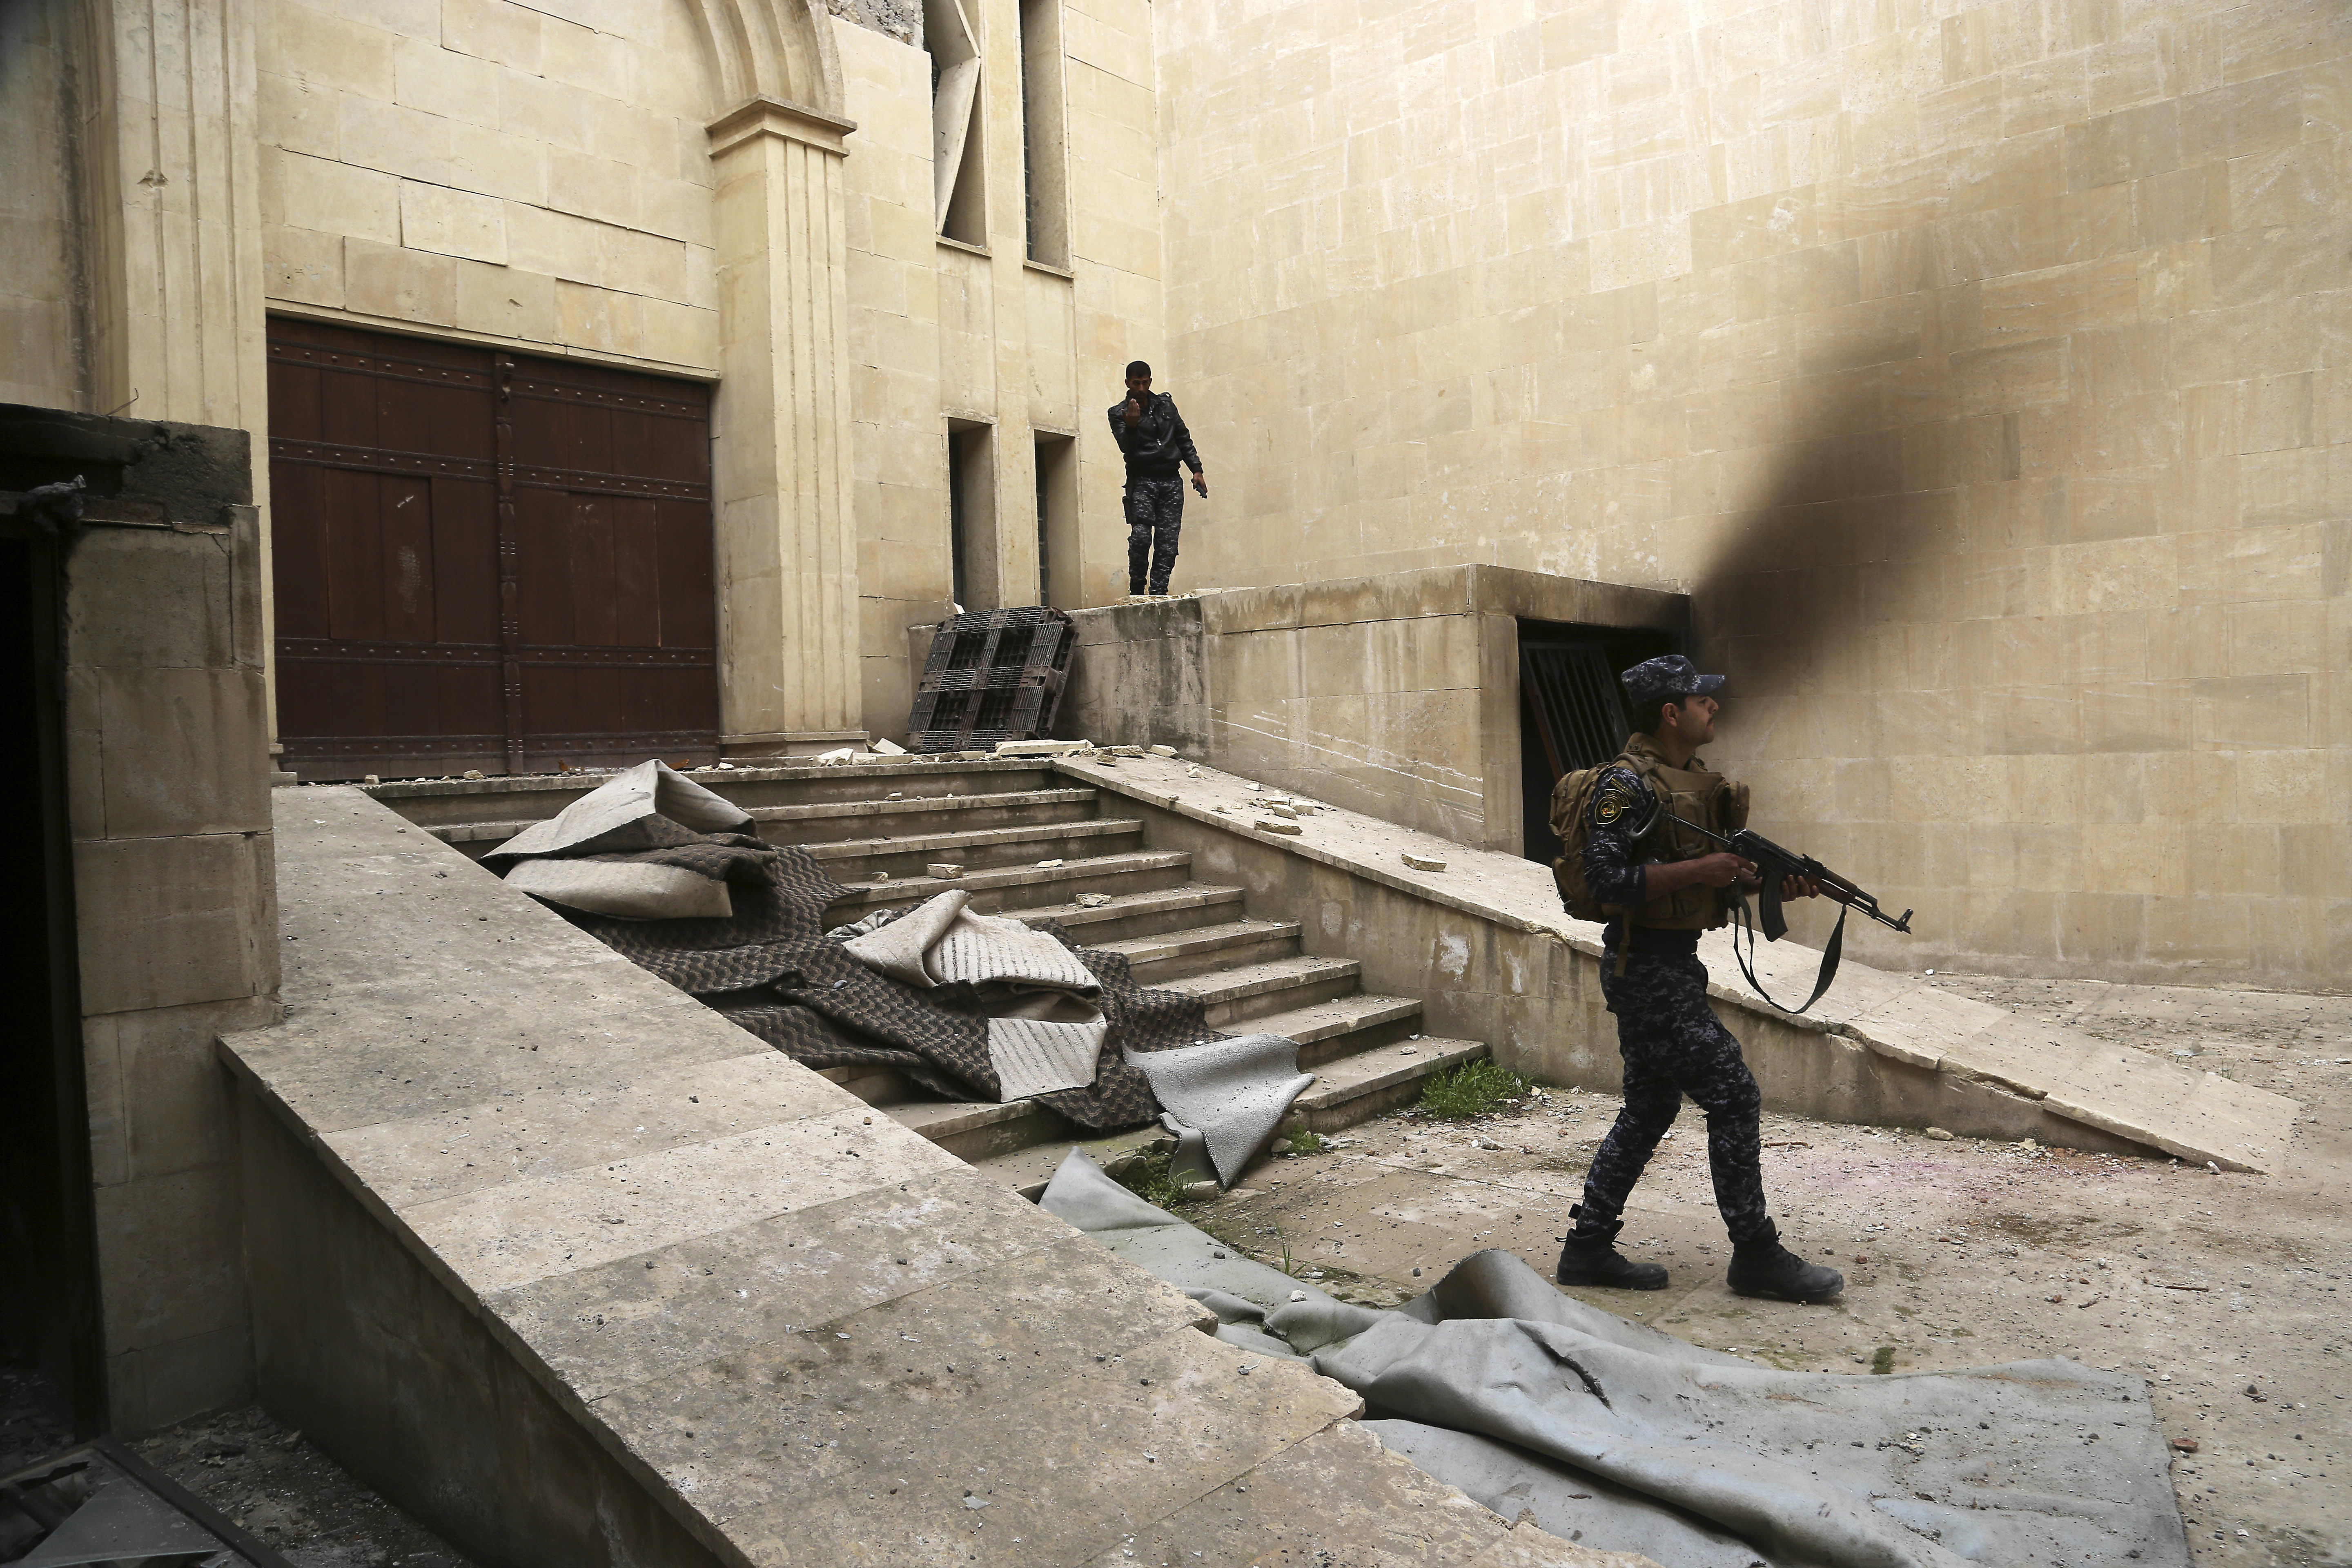 Iraqi federal police inspect Mosul's heavily damaged museum. (AP Photo/Khalid Mohammed)